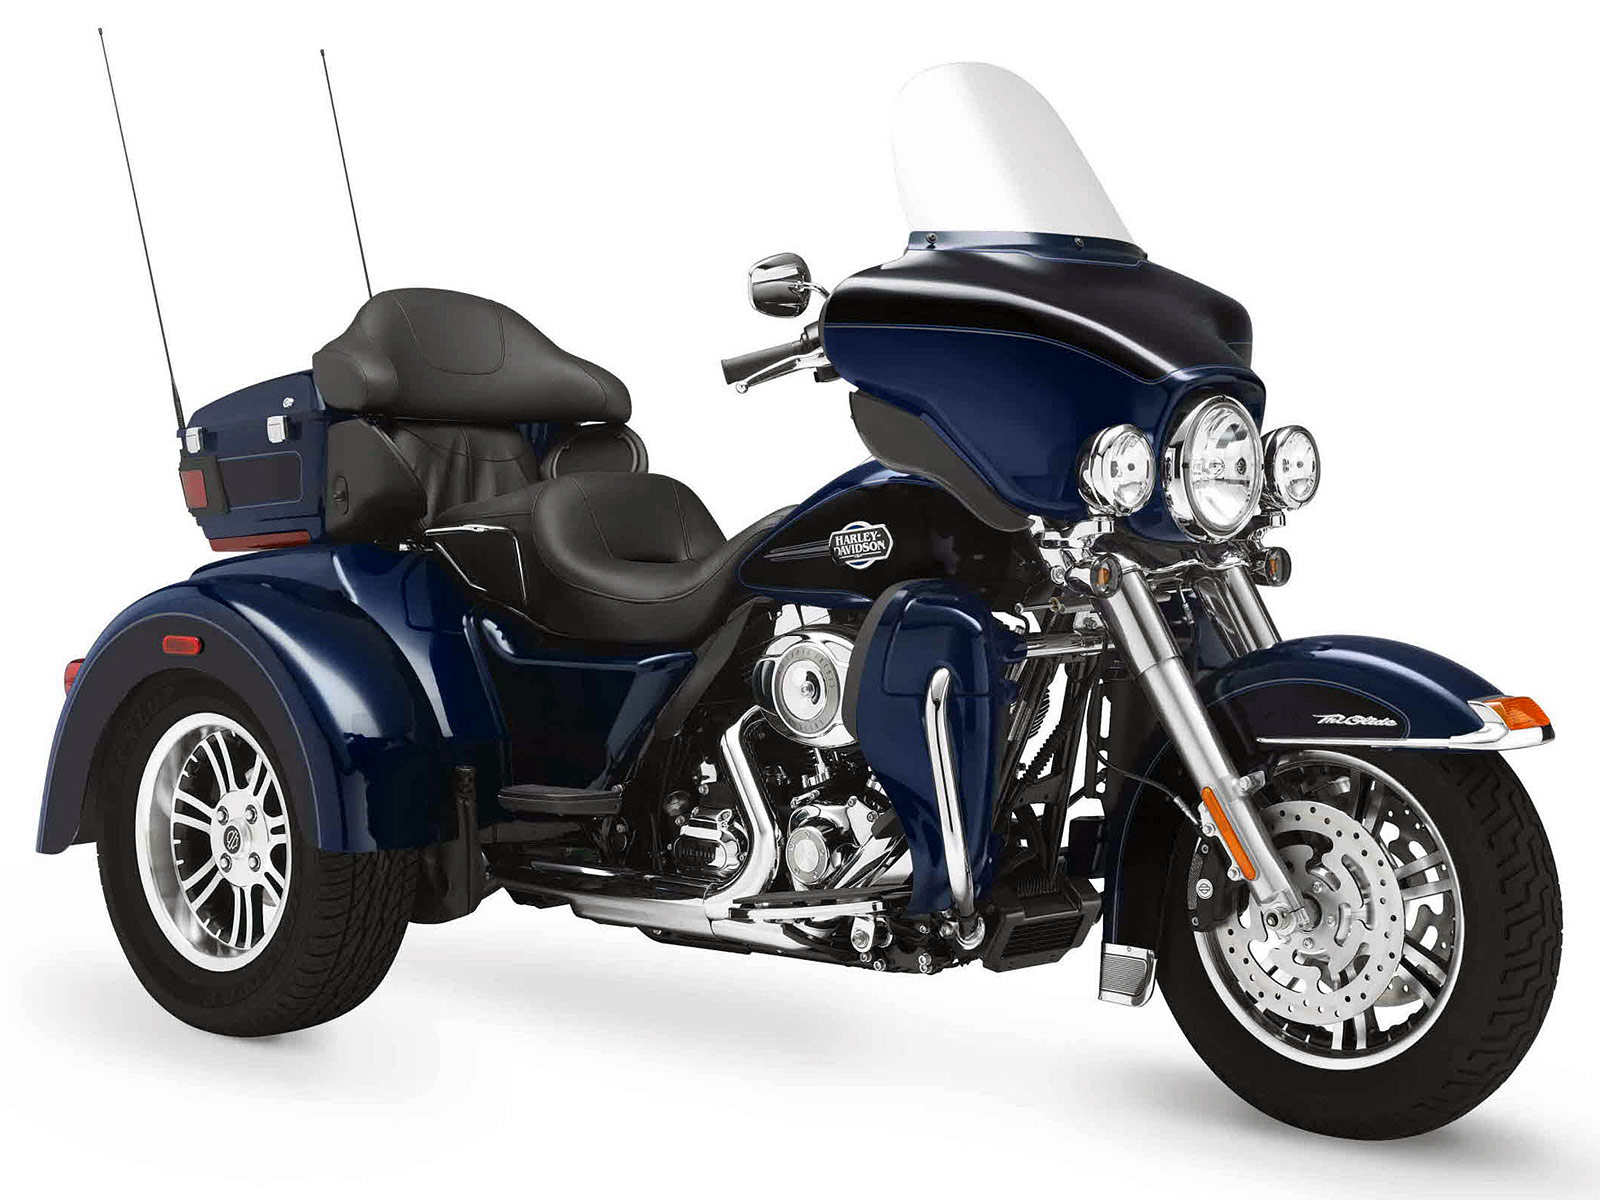 2012 harley davidson flhtcutg tri glide ultra classic. Black Bedroom Furniture Sets. Home Design Ideas